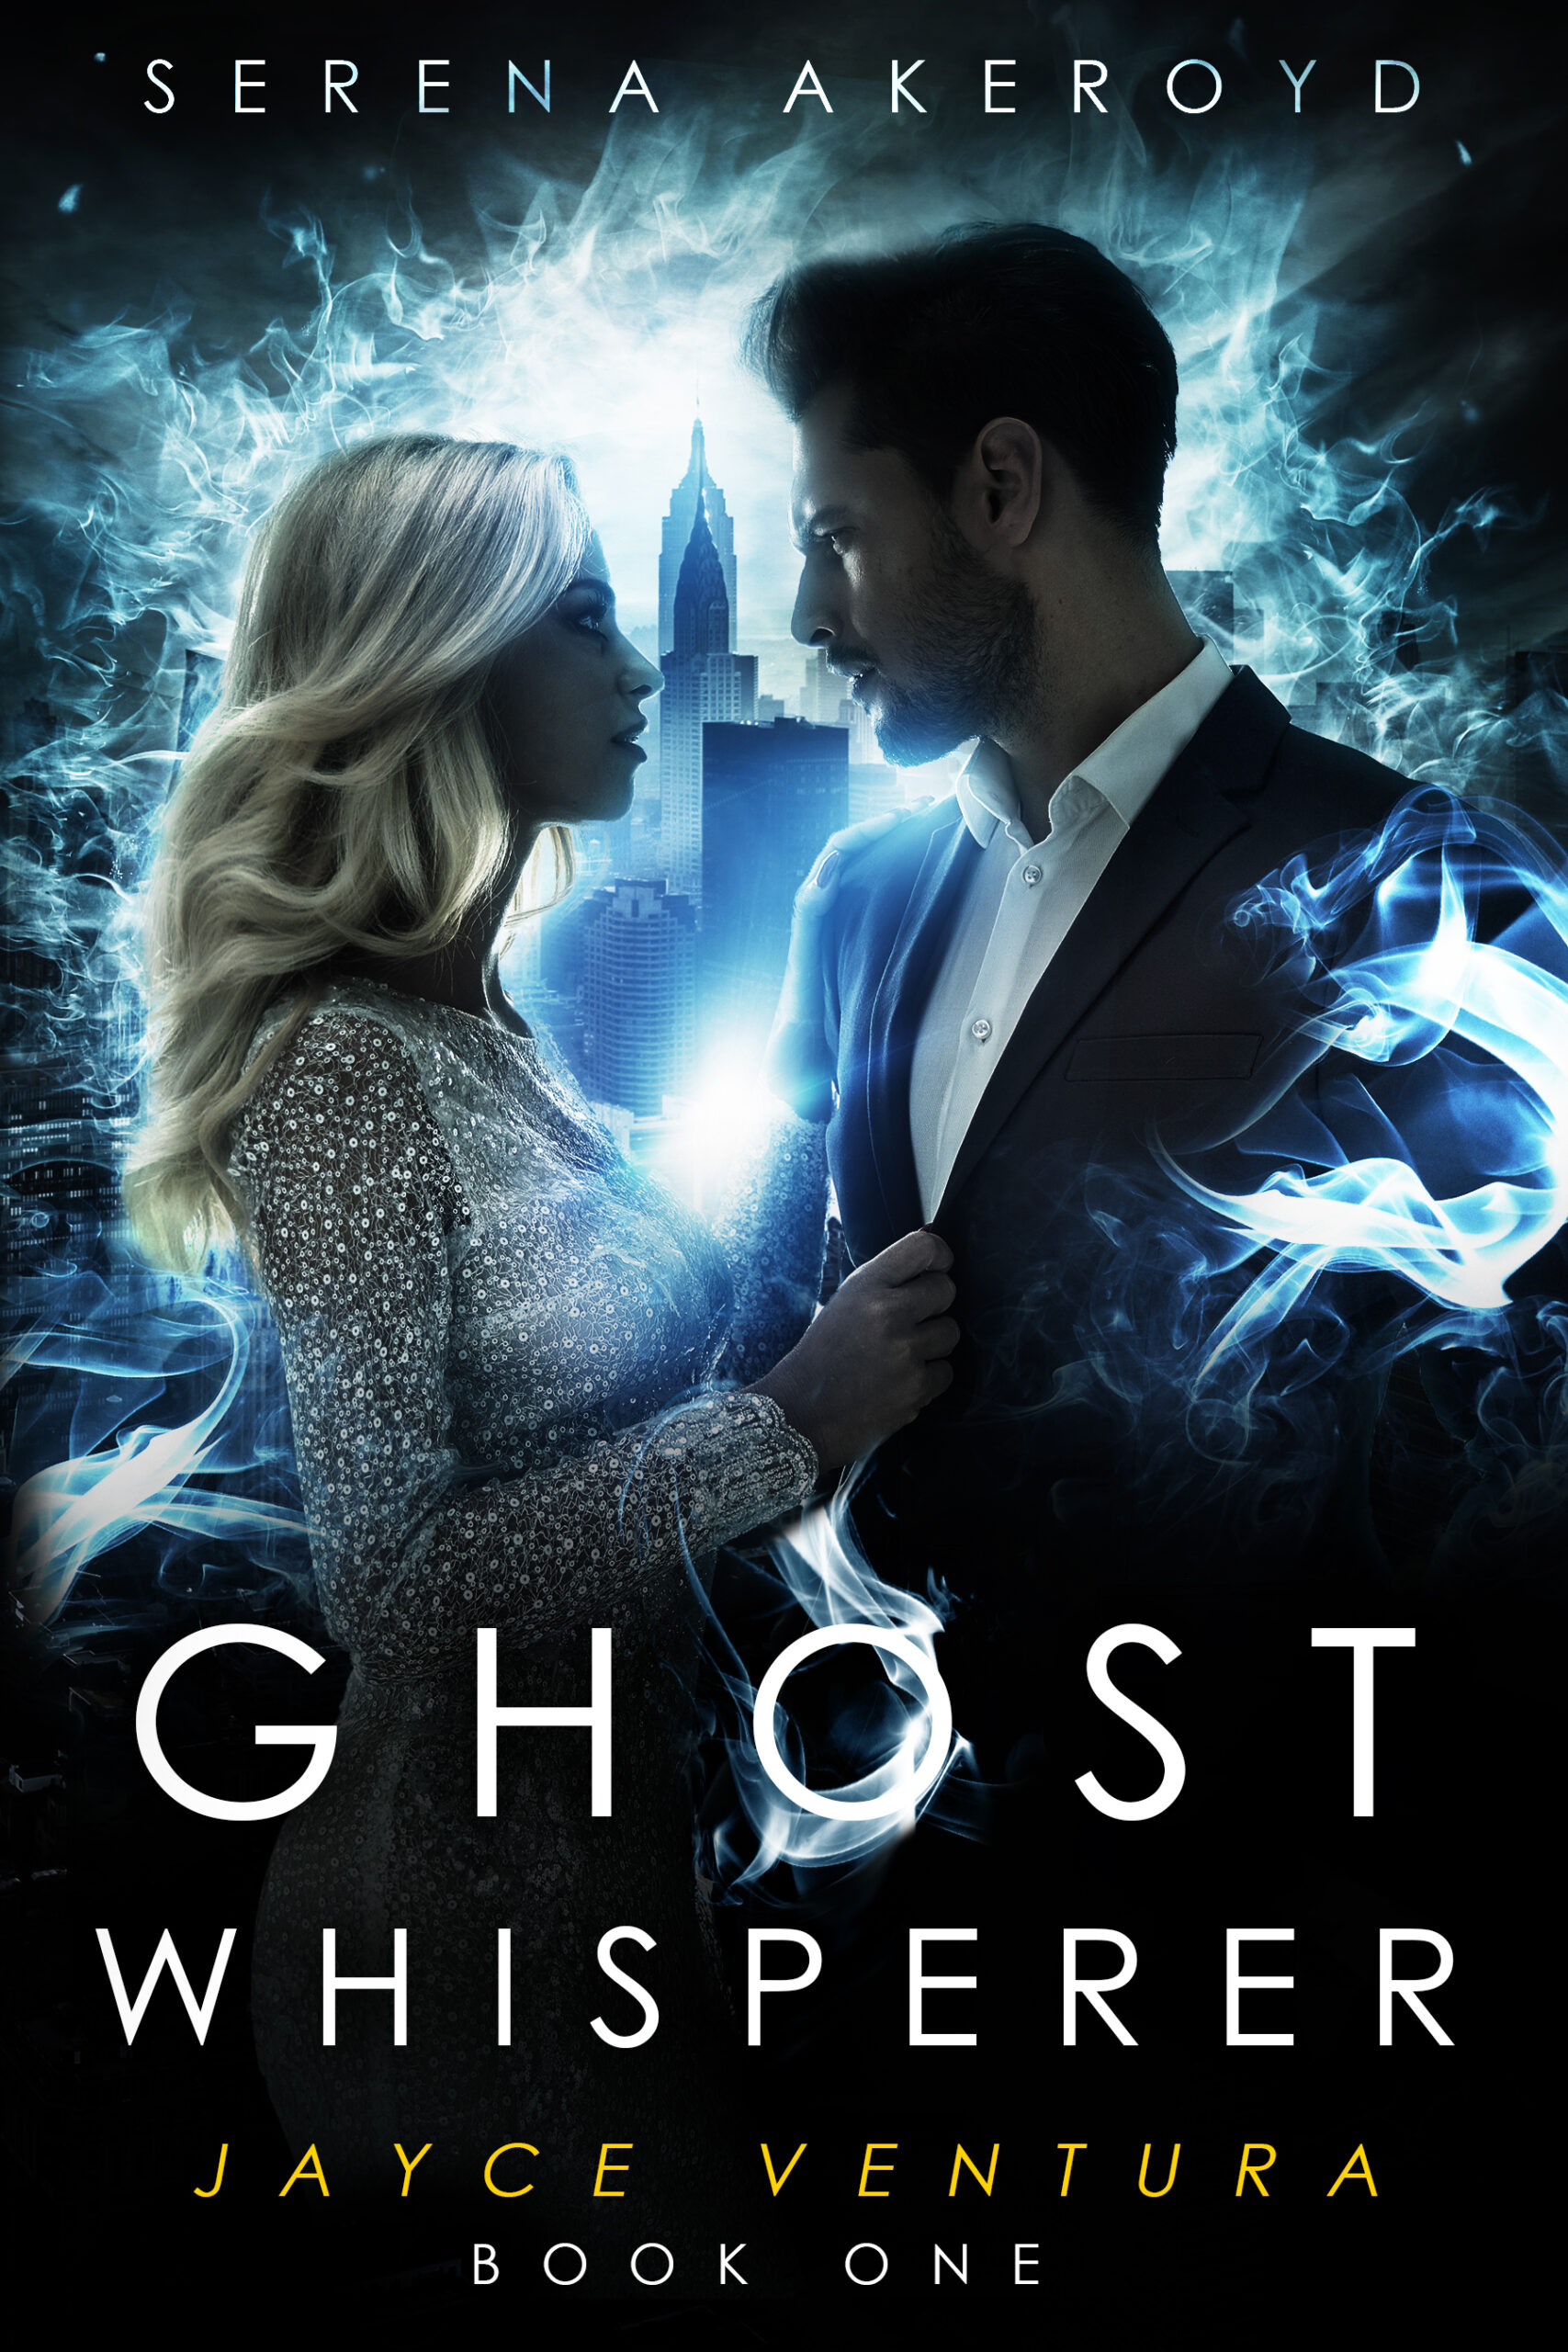 Ghost whisperer cover link to purchase